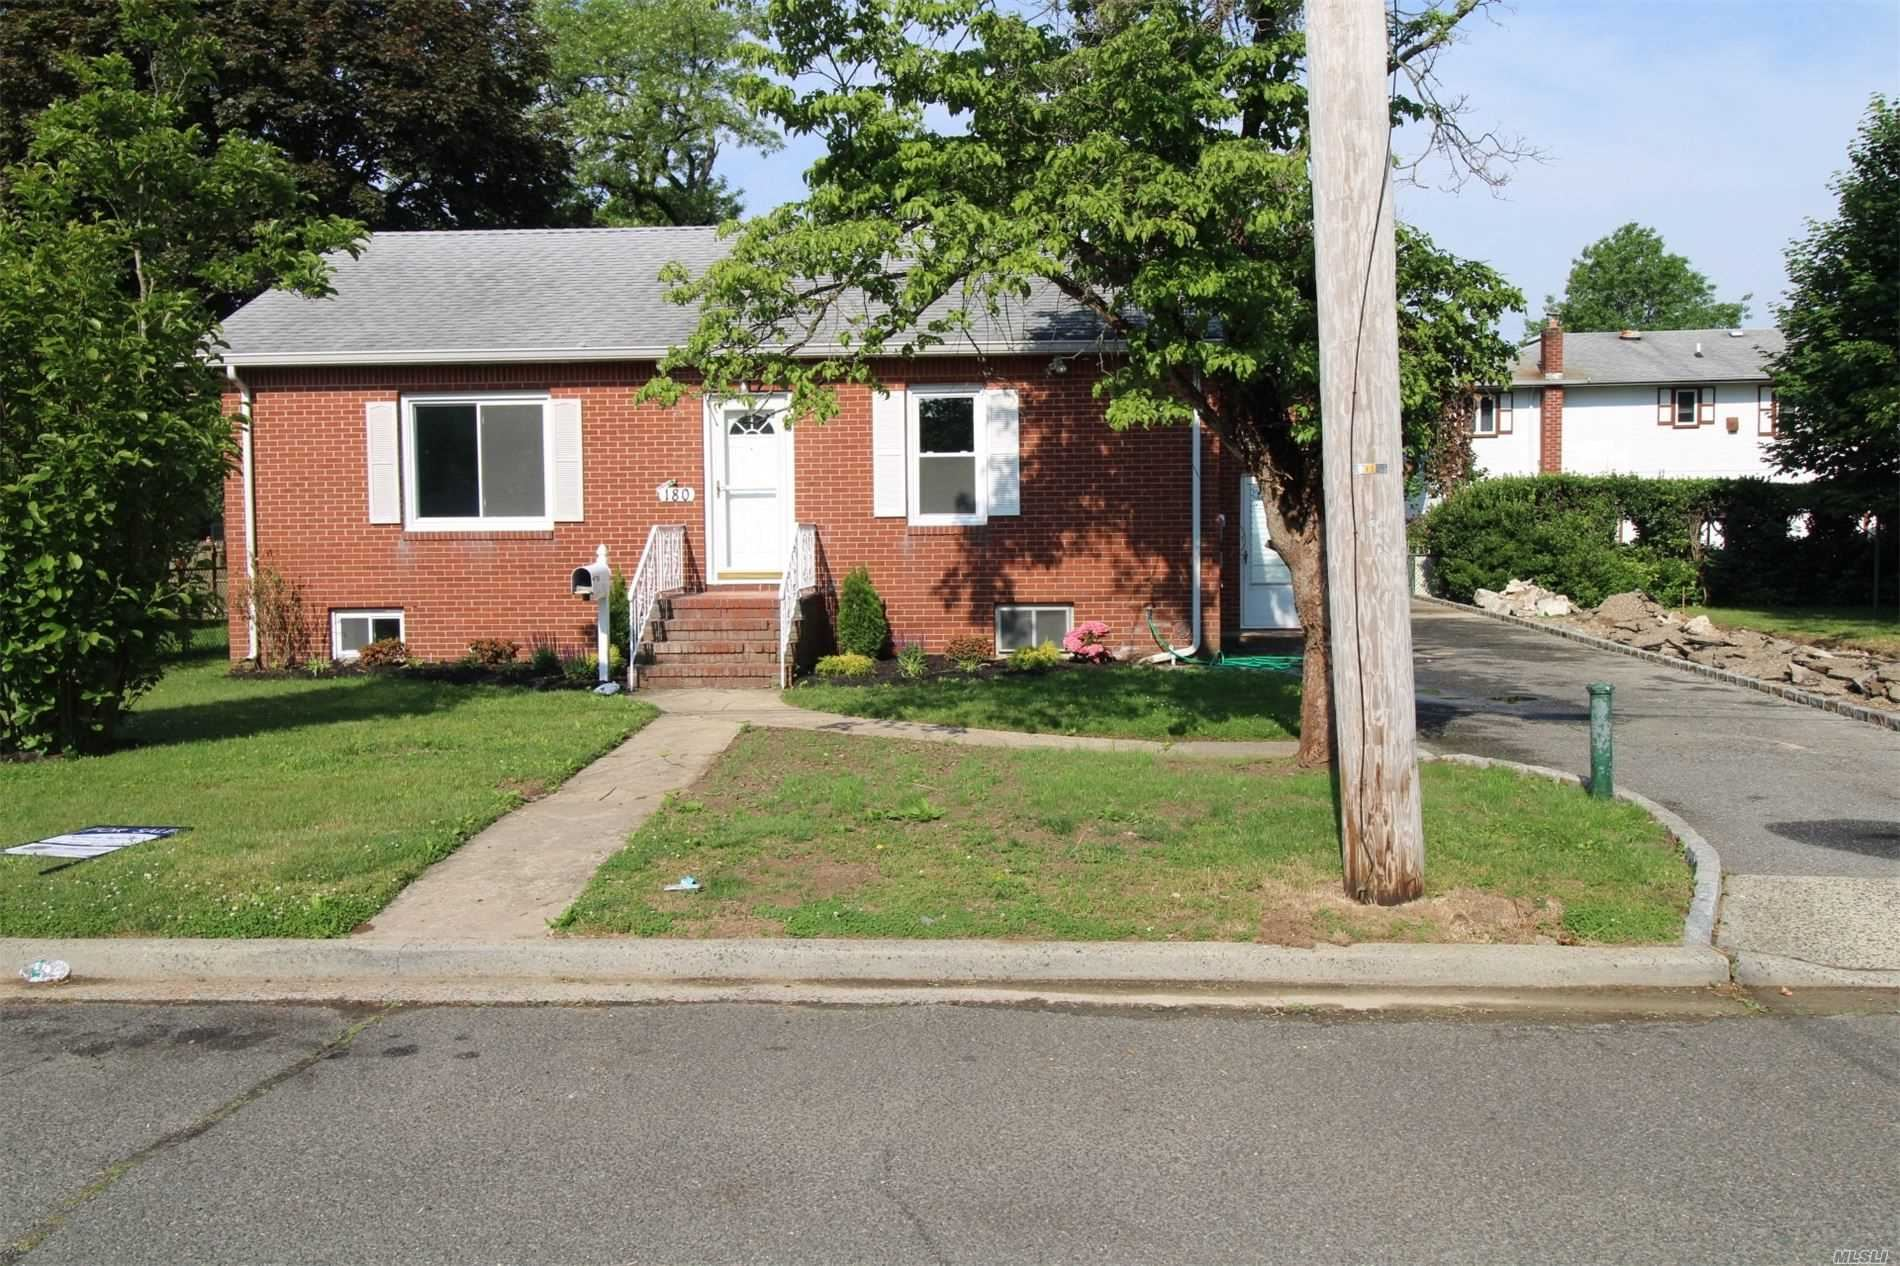 180 Newport Rd, Uniondale, NY 11553 - MLS#: 3219499